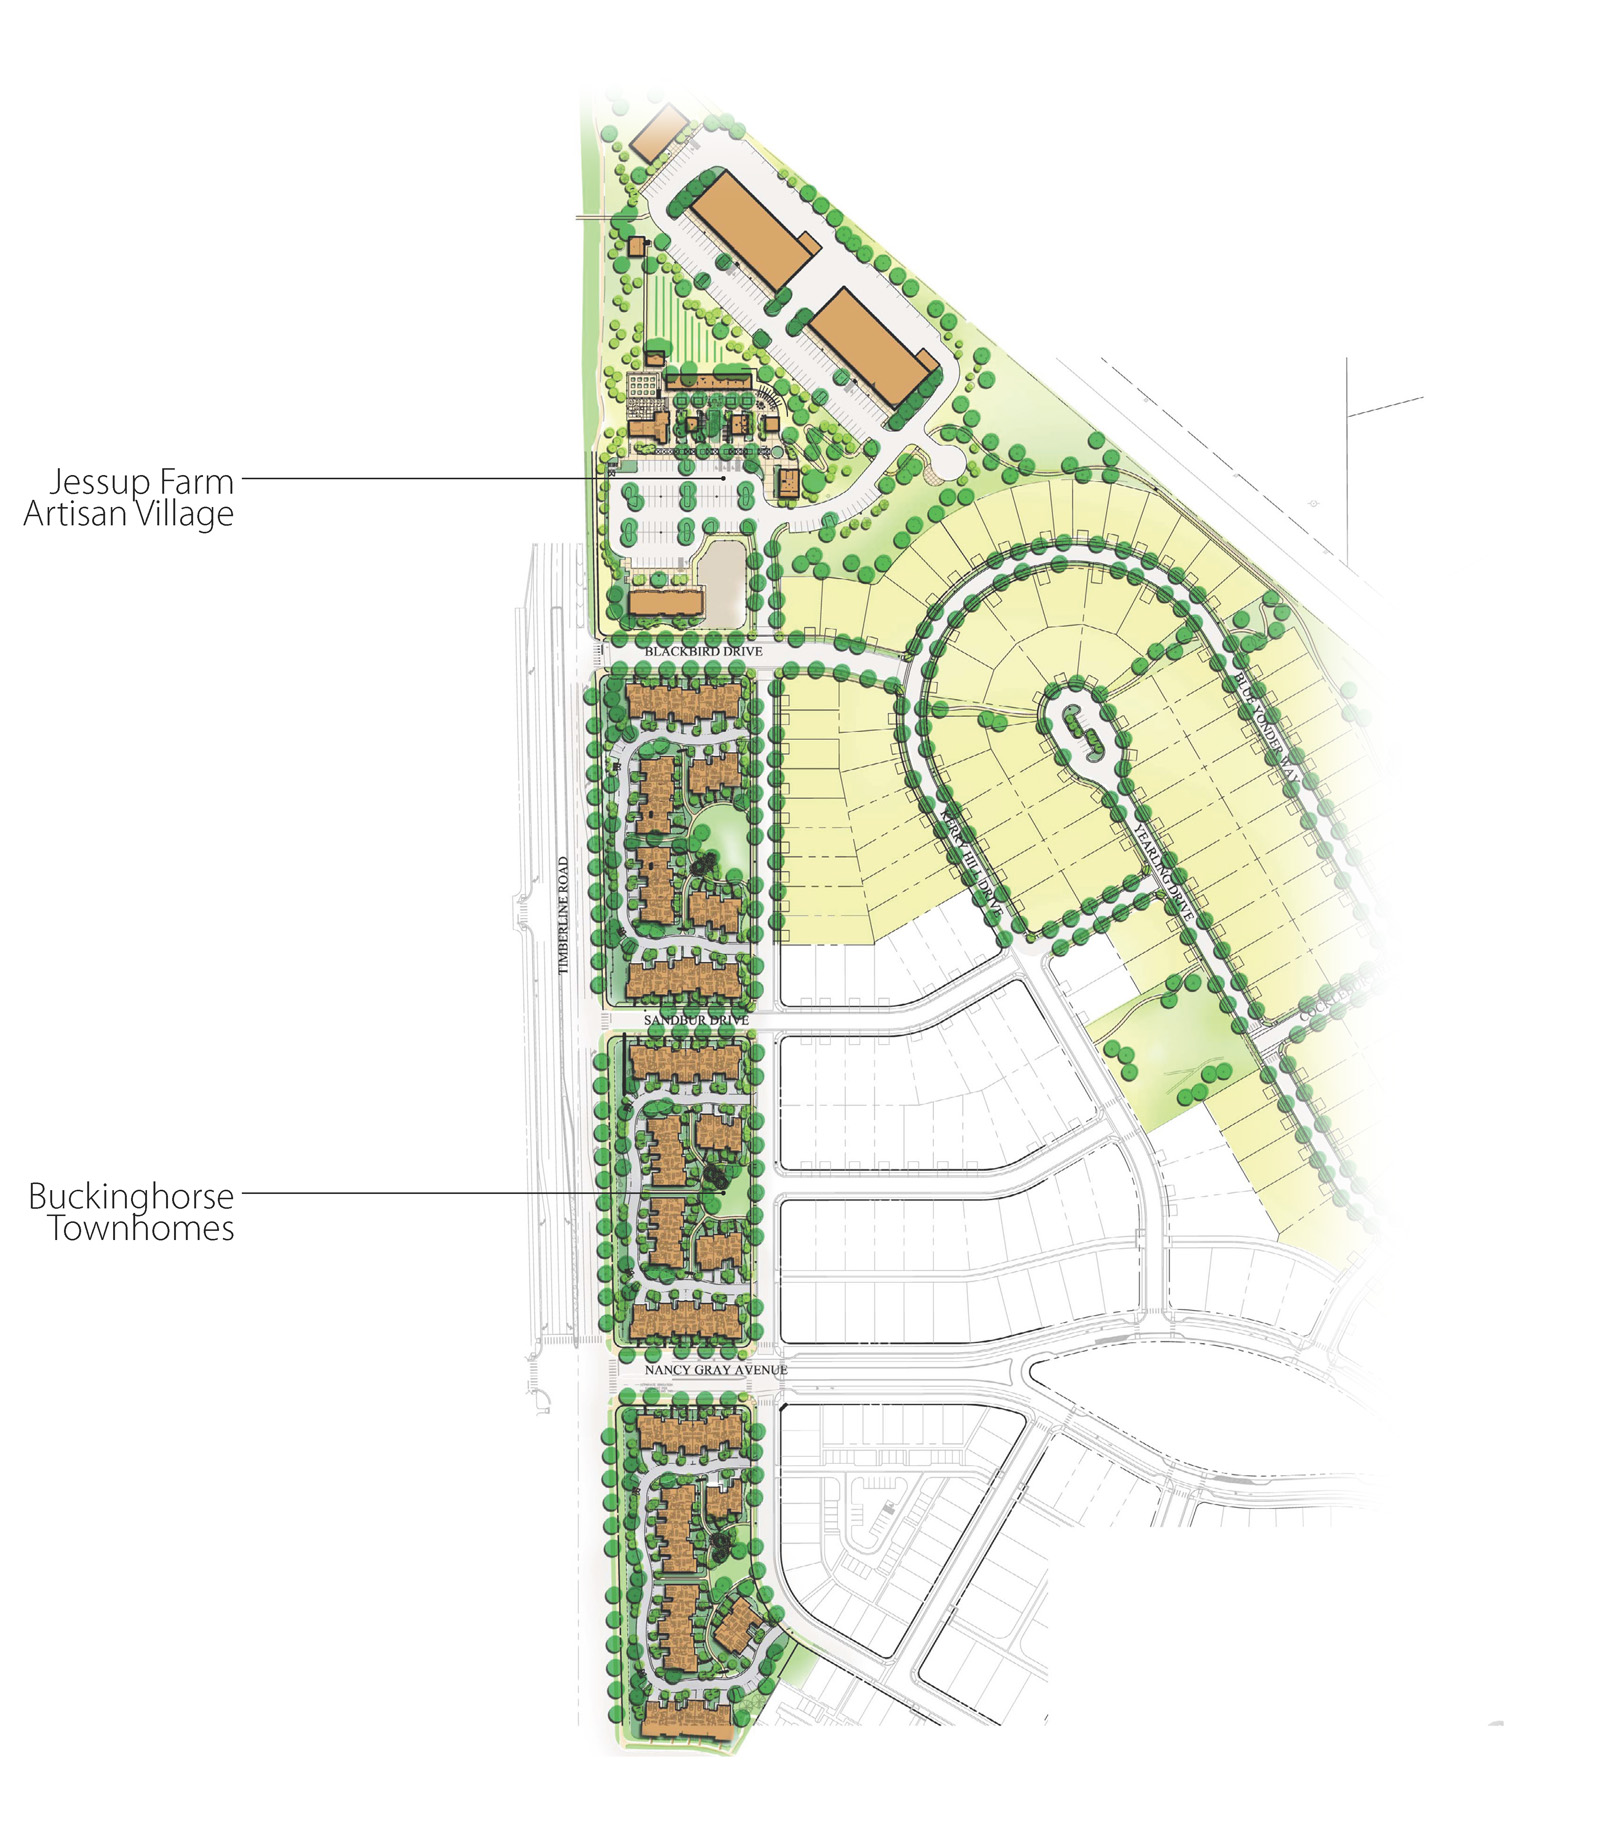 Overall plan of the Townhomes located adjacent to the Jessup Farm Artisan Village